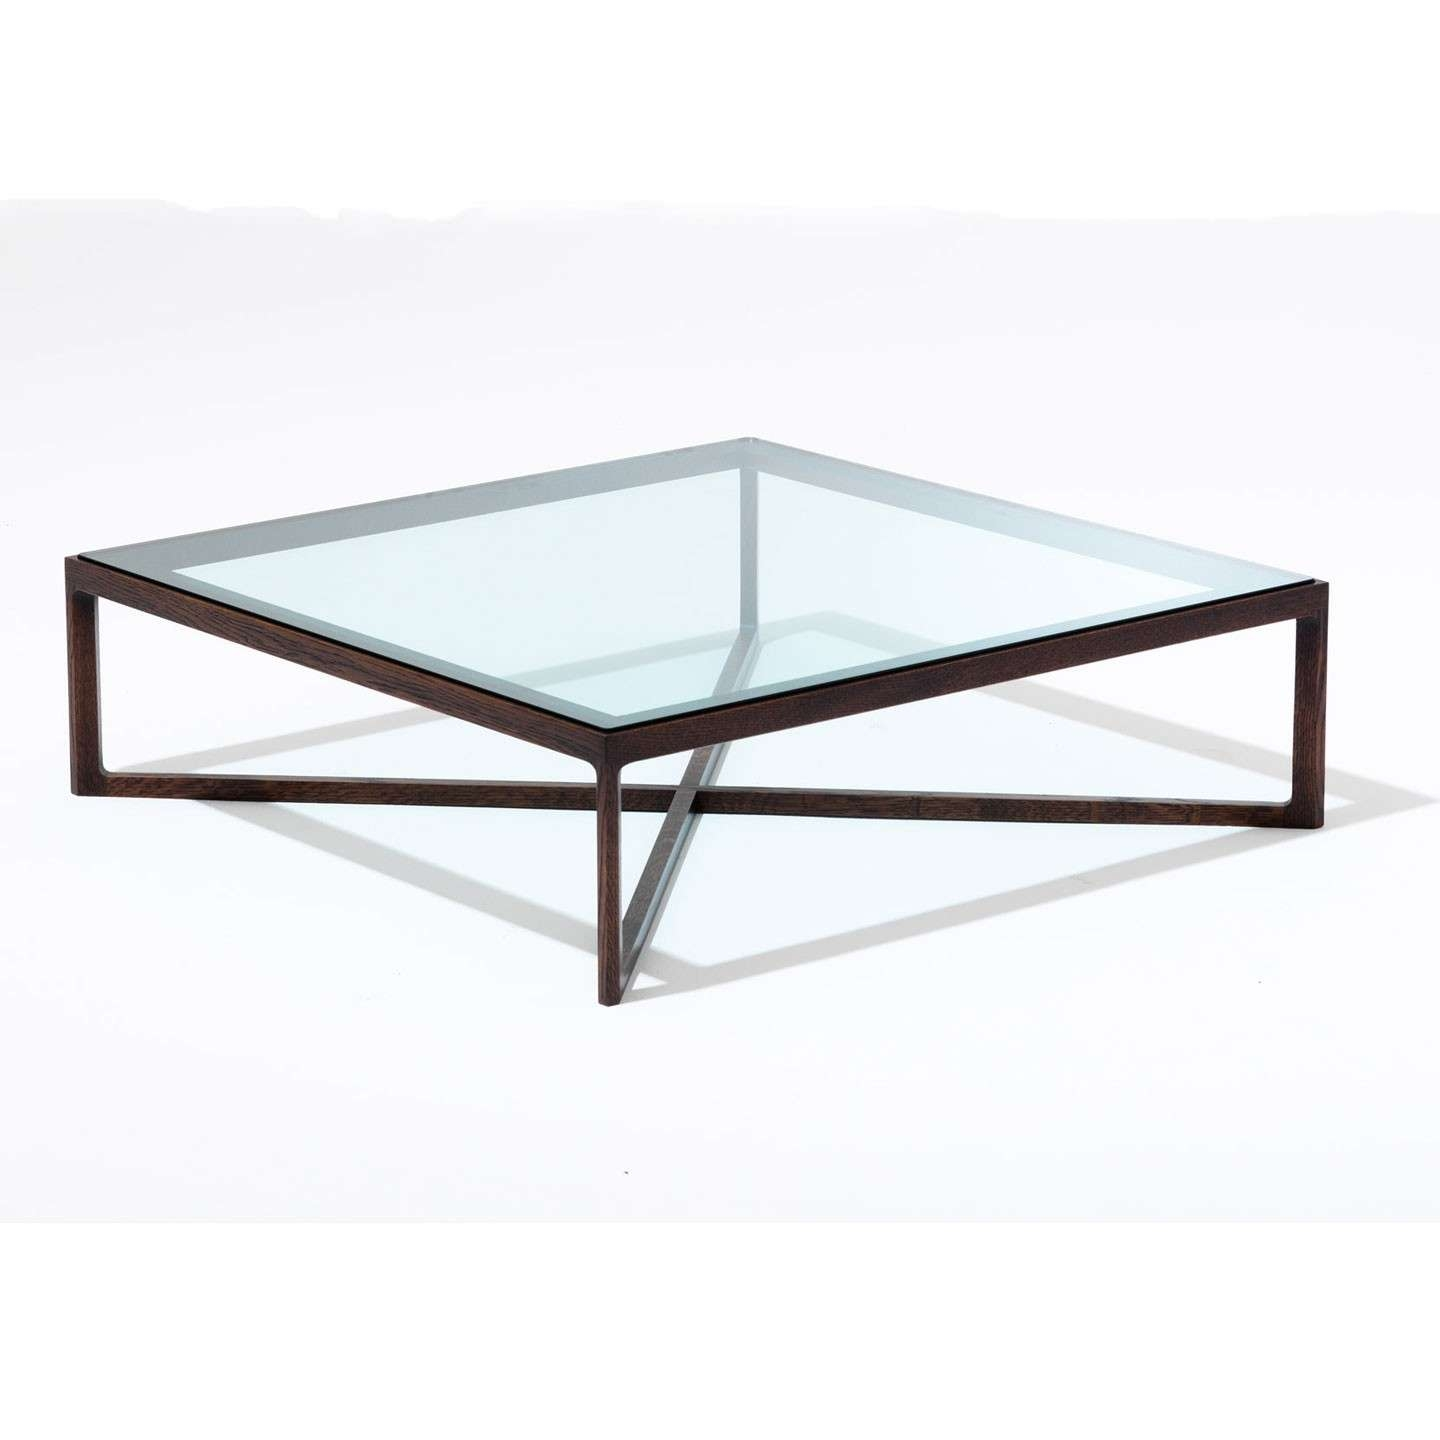 Most Popular Coffee Tables Glass And Metal In Coffee Tables : Charming Dark Brown Square Rustic Glass Wooden (View 12 of 20)